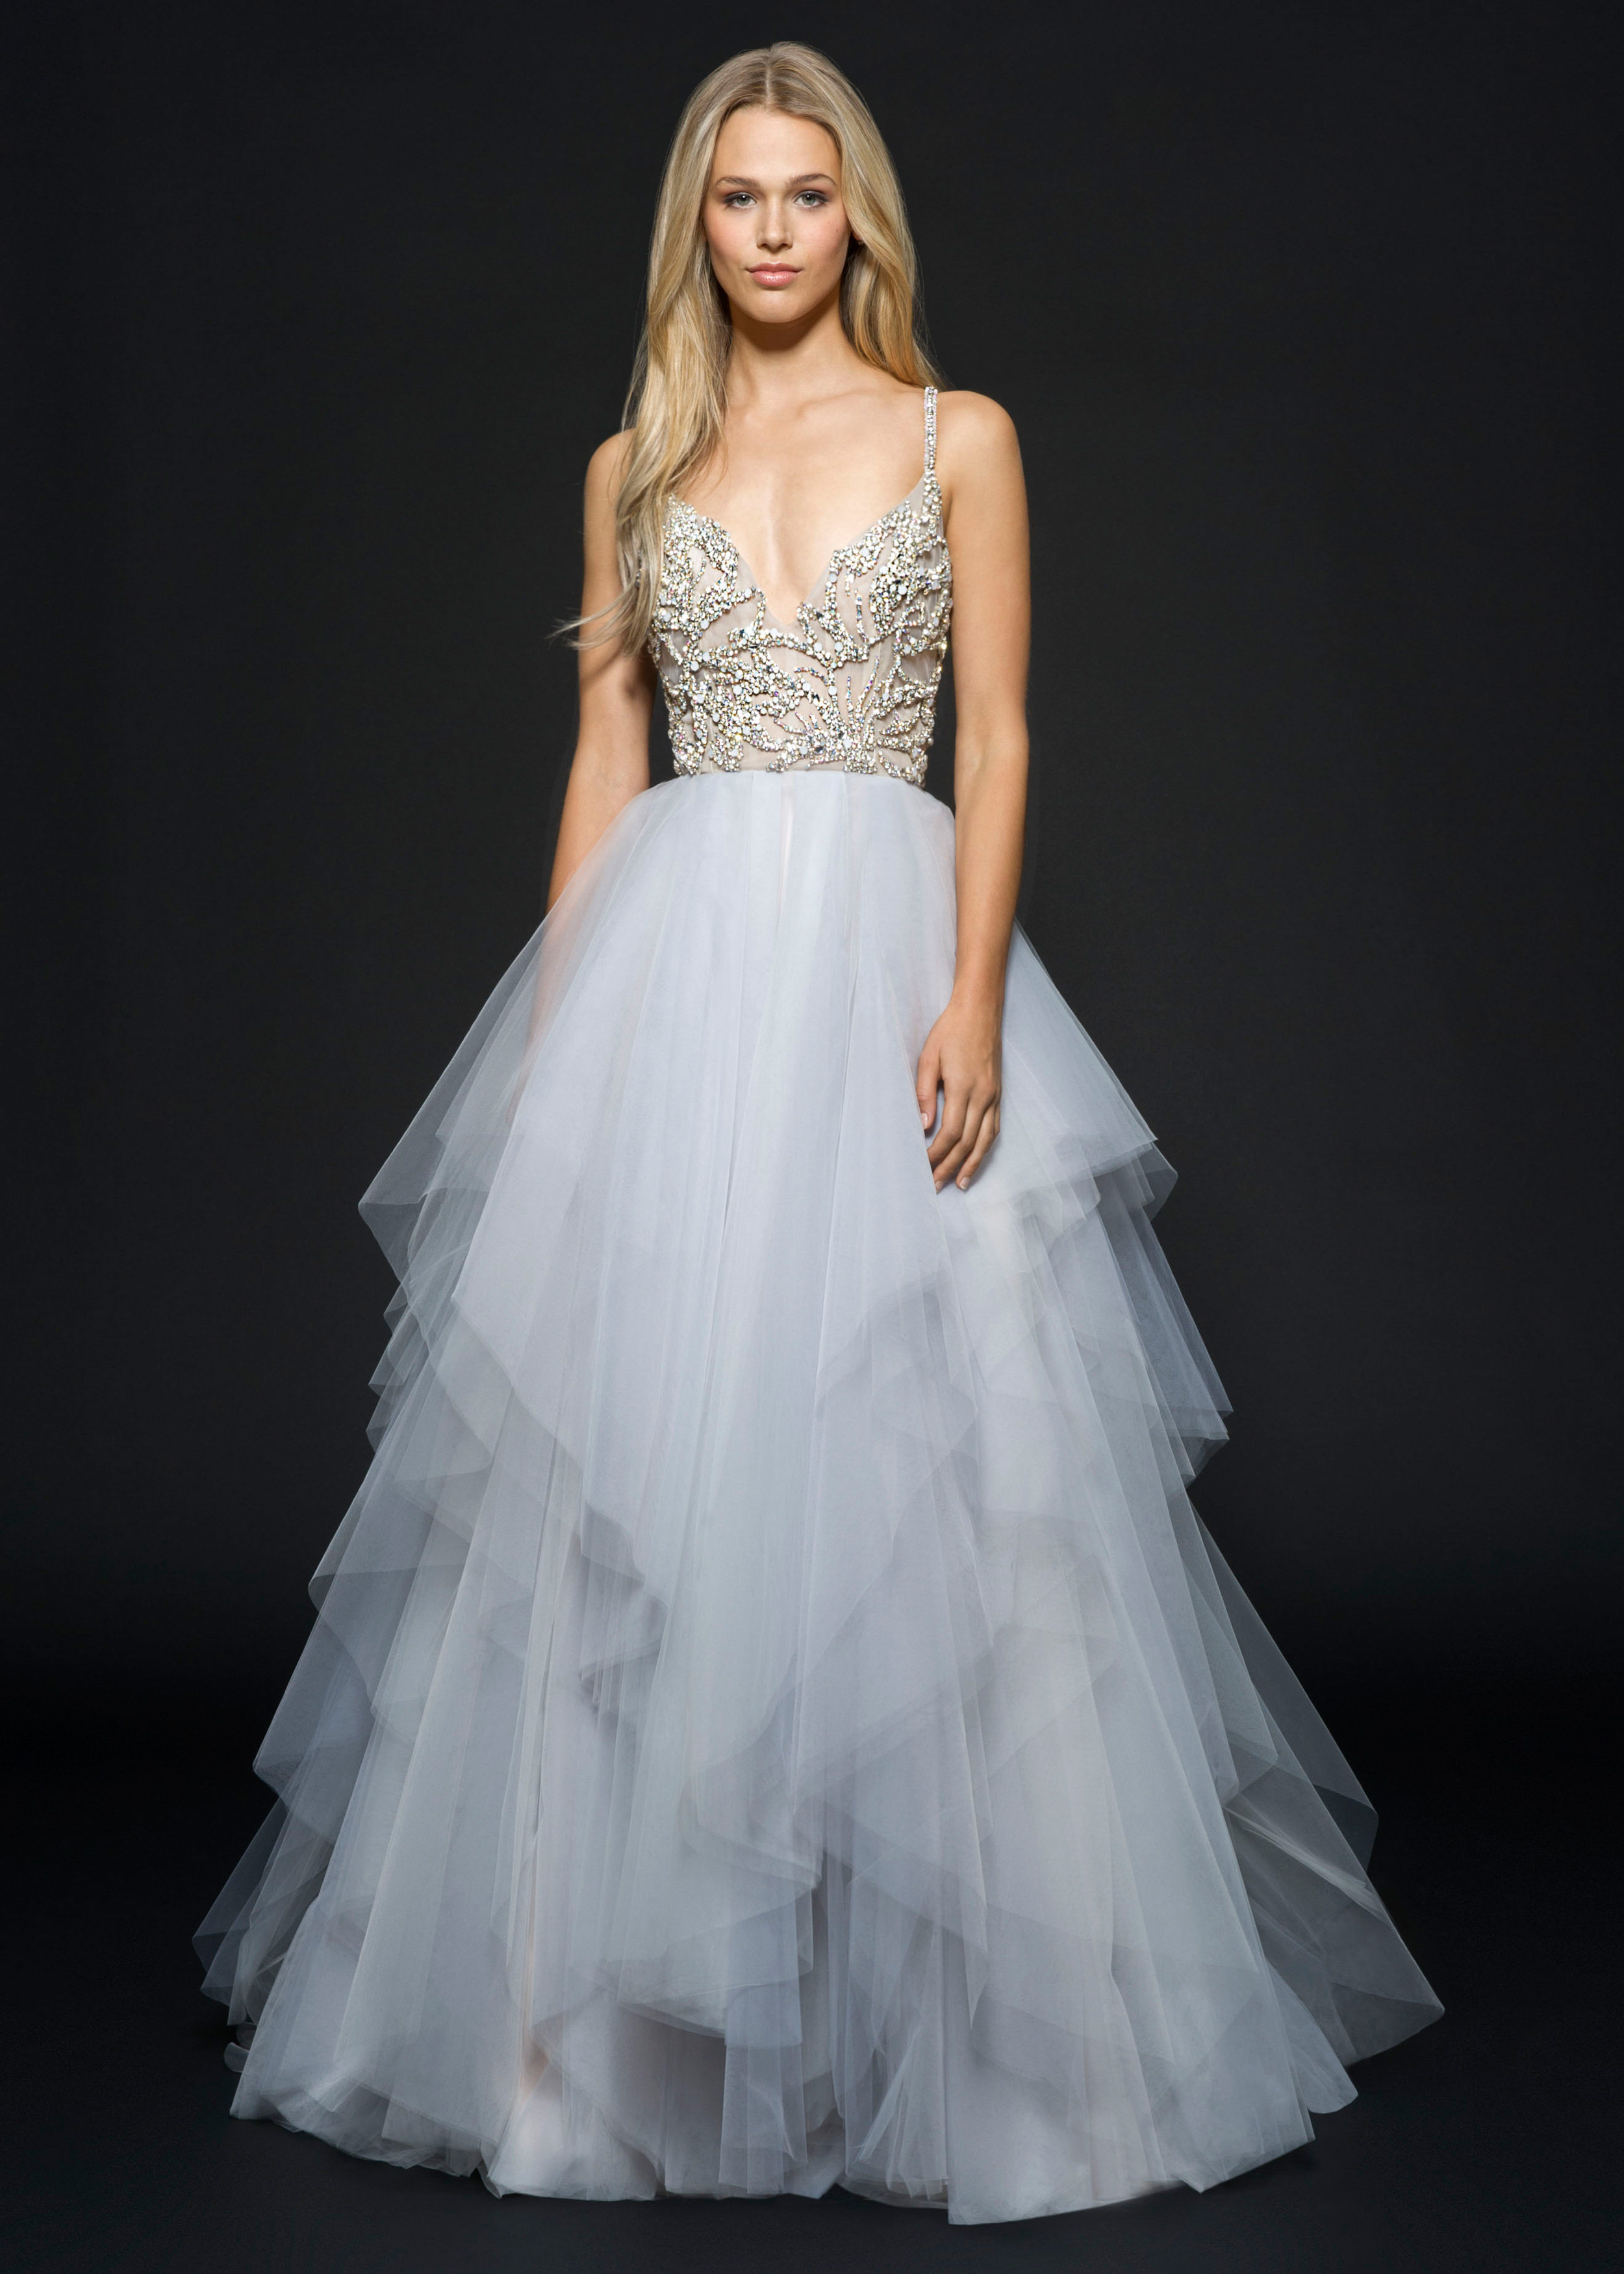 Bridal Gowns and Wedding Dresses by JLM Couture - Style 6656 Arlo